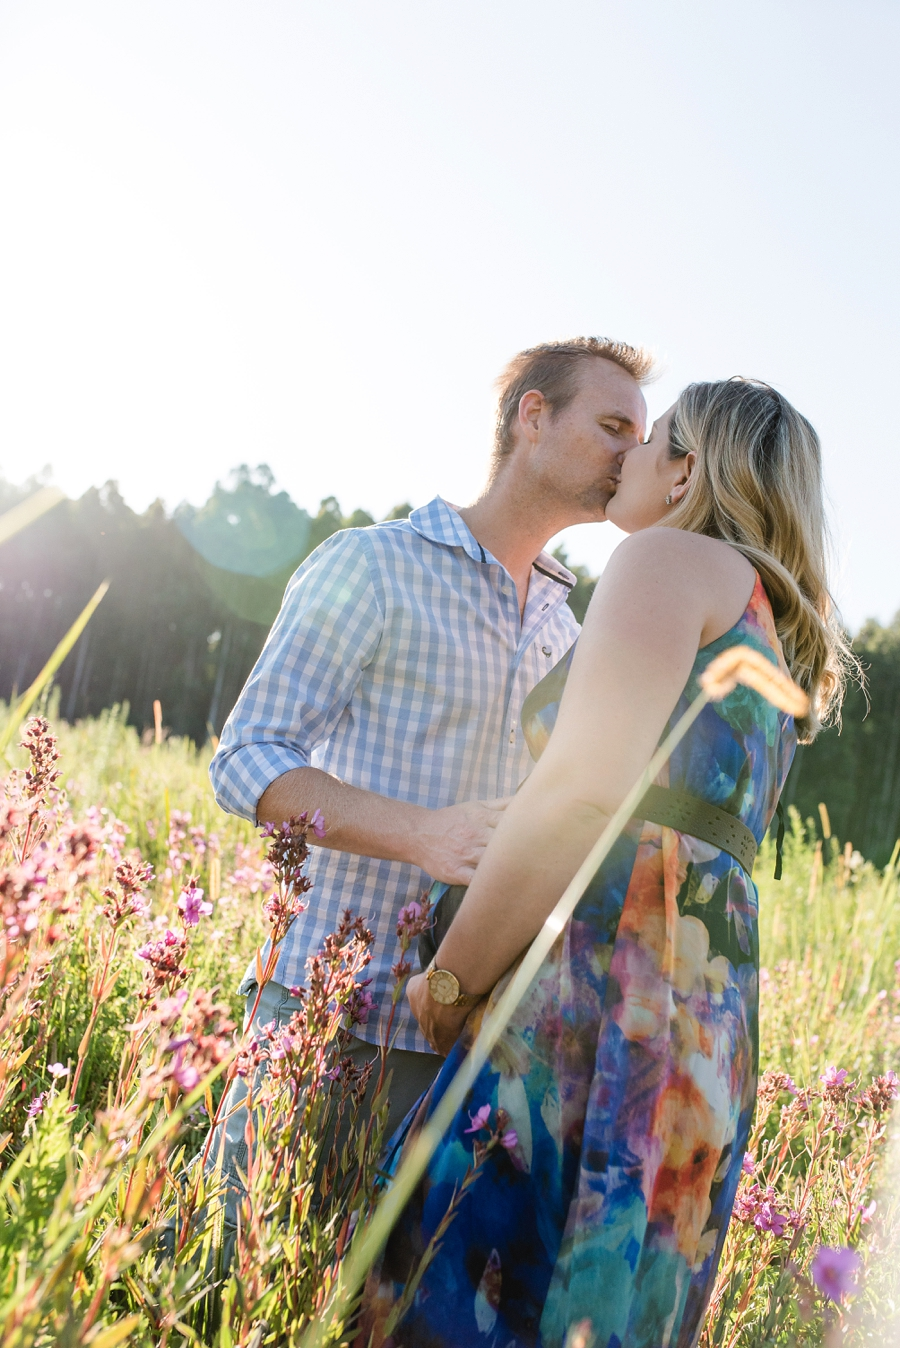 Kate Martens Photography - Pam Nel Maternity_0028